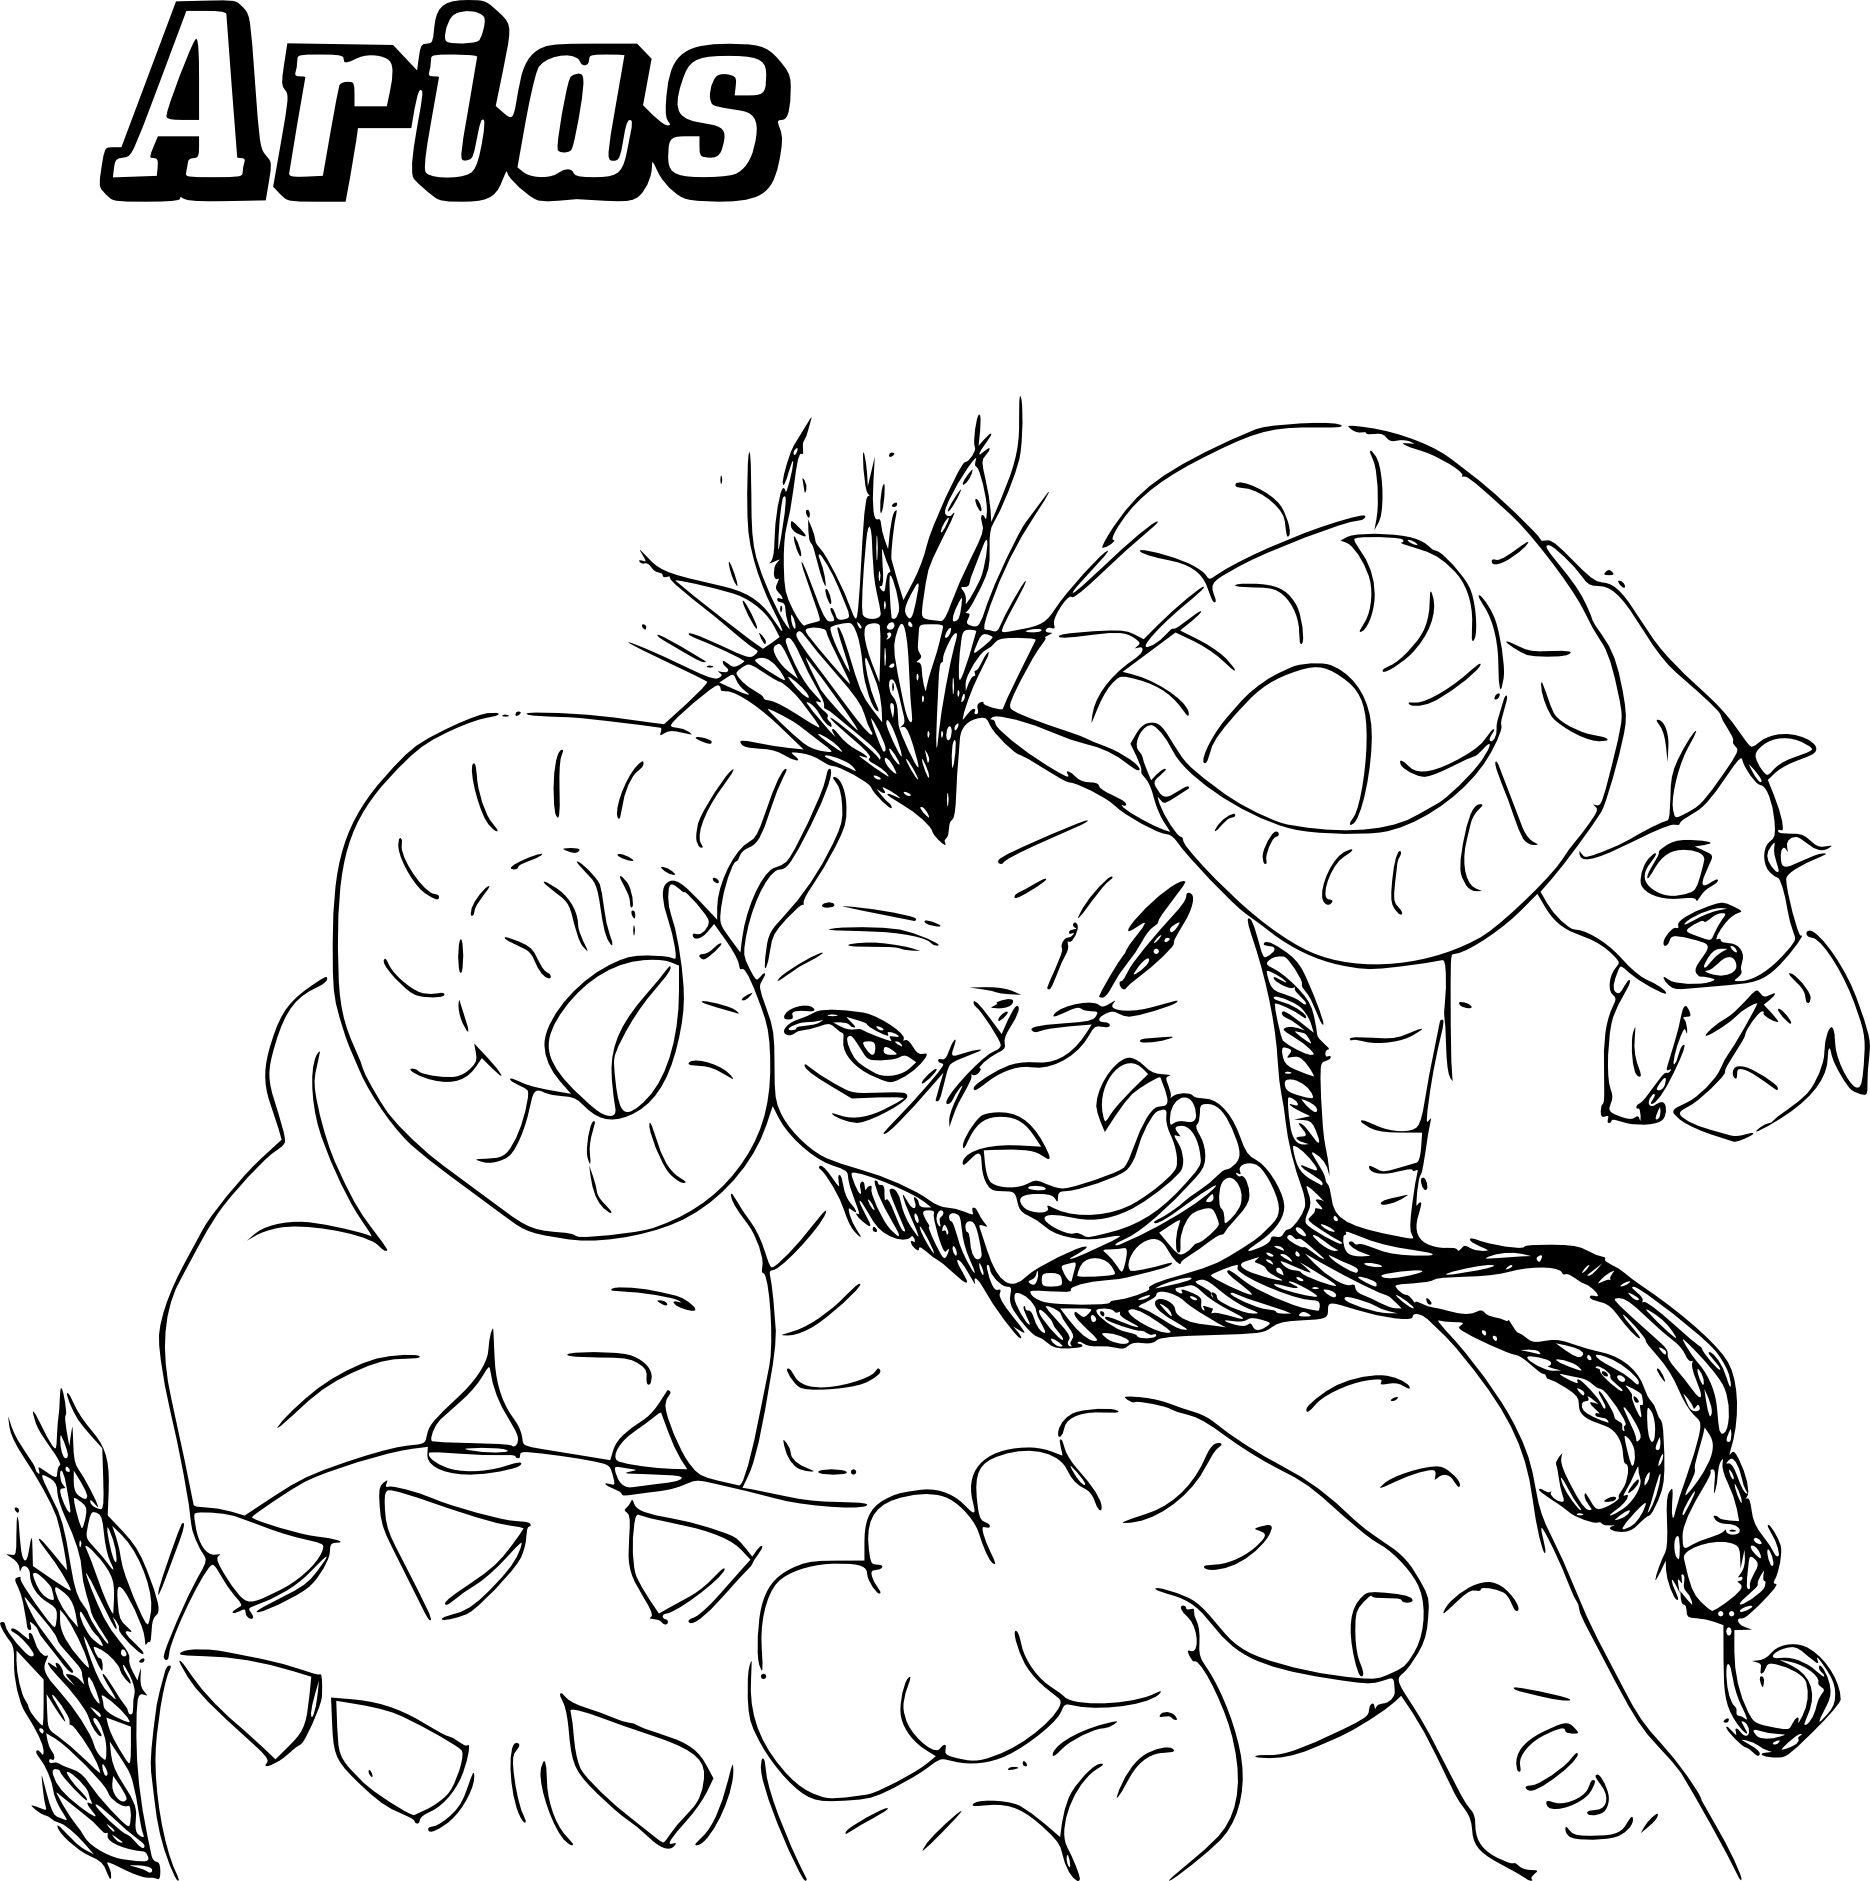 Coloriage Chaotic Arias